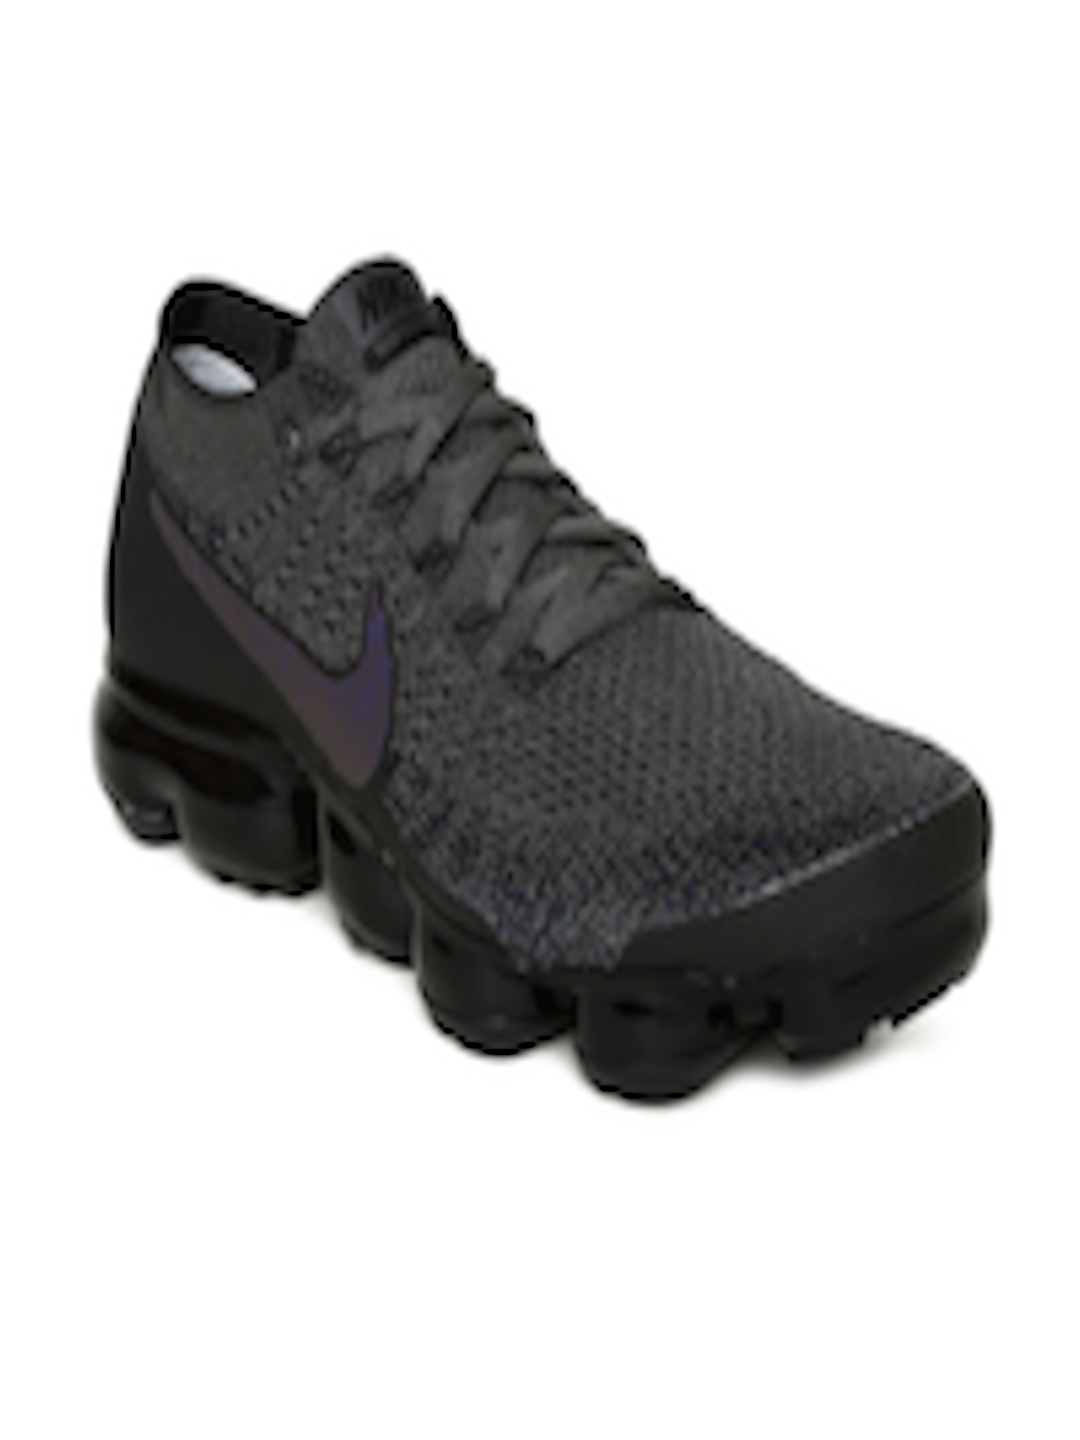 79d70ffc03b8a Buy Nike Women Charcoal Grey Air Vapormax Flyknit Running Shoes - Sports  Shoes for Women 2239282